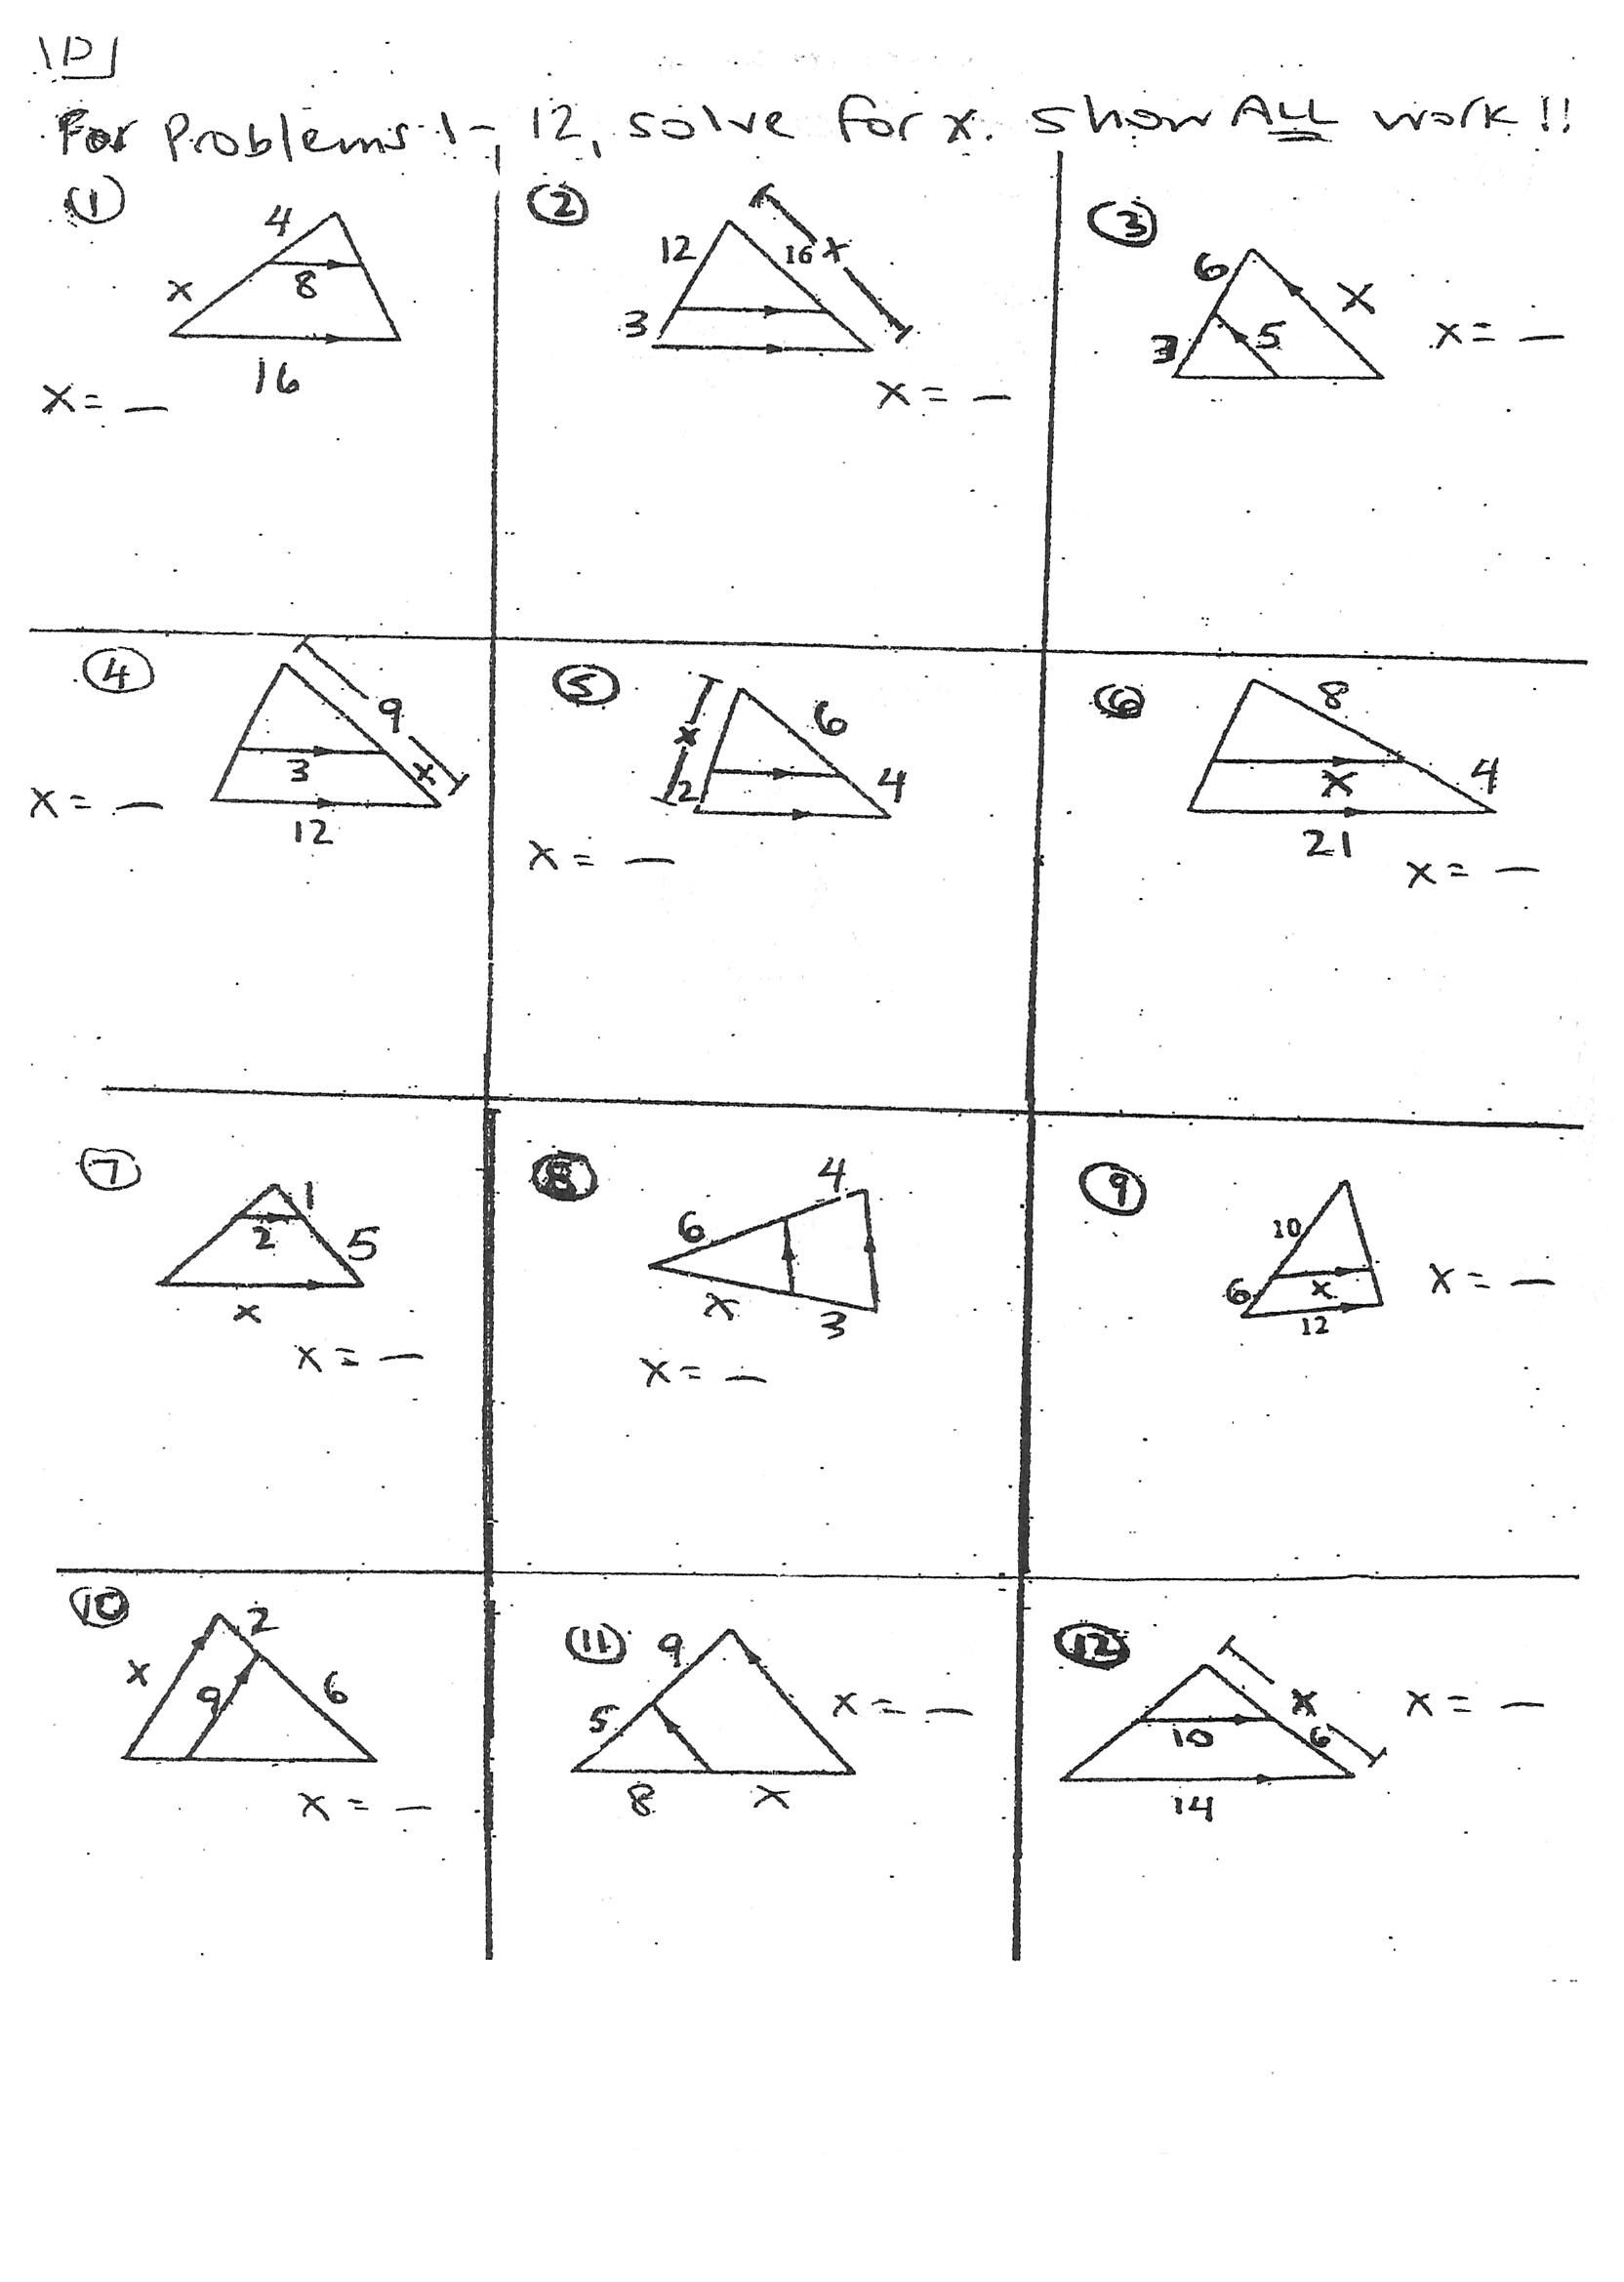 medium resolution of Geometry Similar Triangles Worksheet - Promotiontablecovers